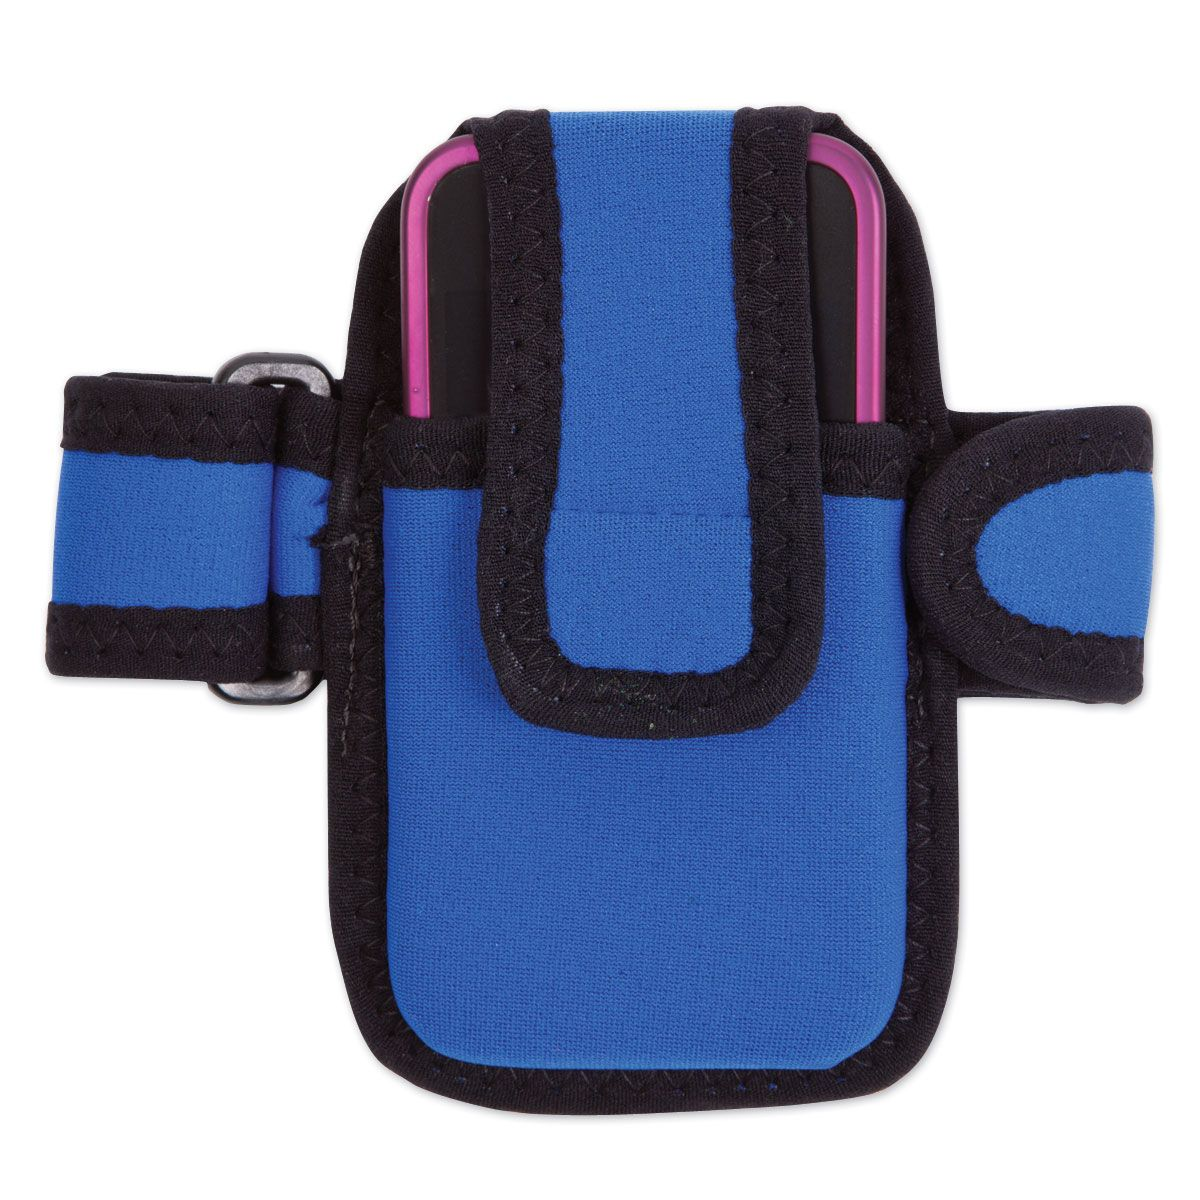 Cell Phone Holder To Strap To Riders Arm Or Leg In Case